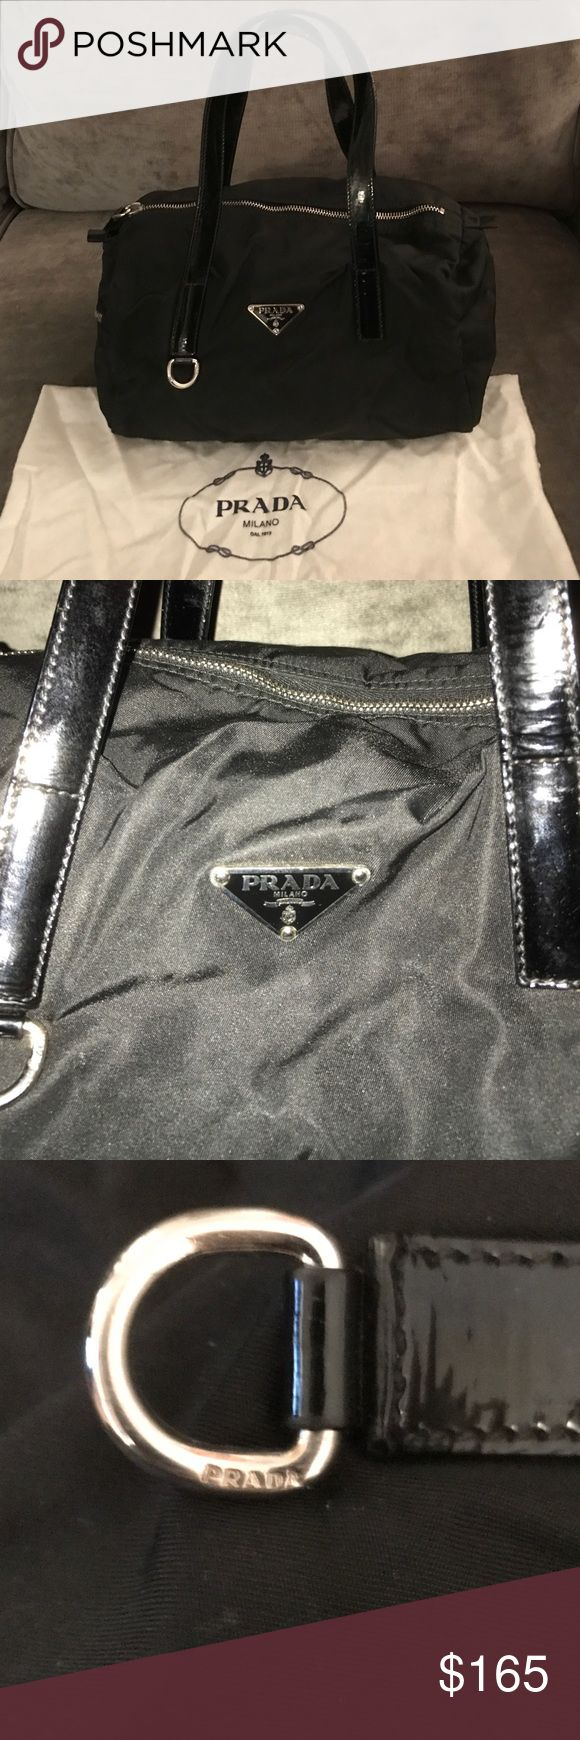 """NEW! Prada Mini Duffle Authentic Prada Mini Duffle BR2394 Semicotrolla Tessuto Nero (black). Bag is nylon and handle straps are patent leather. Bag has a side zip pocket on the outside and measures 7' h x 12.5' l x 7.5' w. Unfortunately the authenticity card has been misplaced, but the """"Prada: Made in Italy"""" tab is visible on the inside of the bag and the metal hoop on the front of the bag has the authentic Prada inscription. Bag comes with original dust bag. Minimal wear and very good…"""